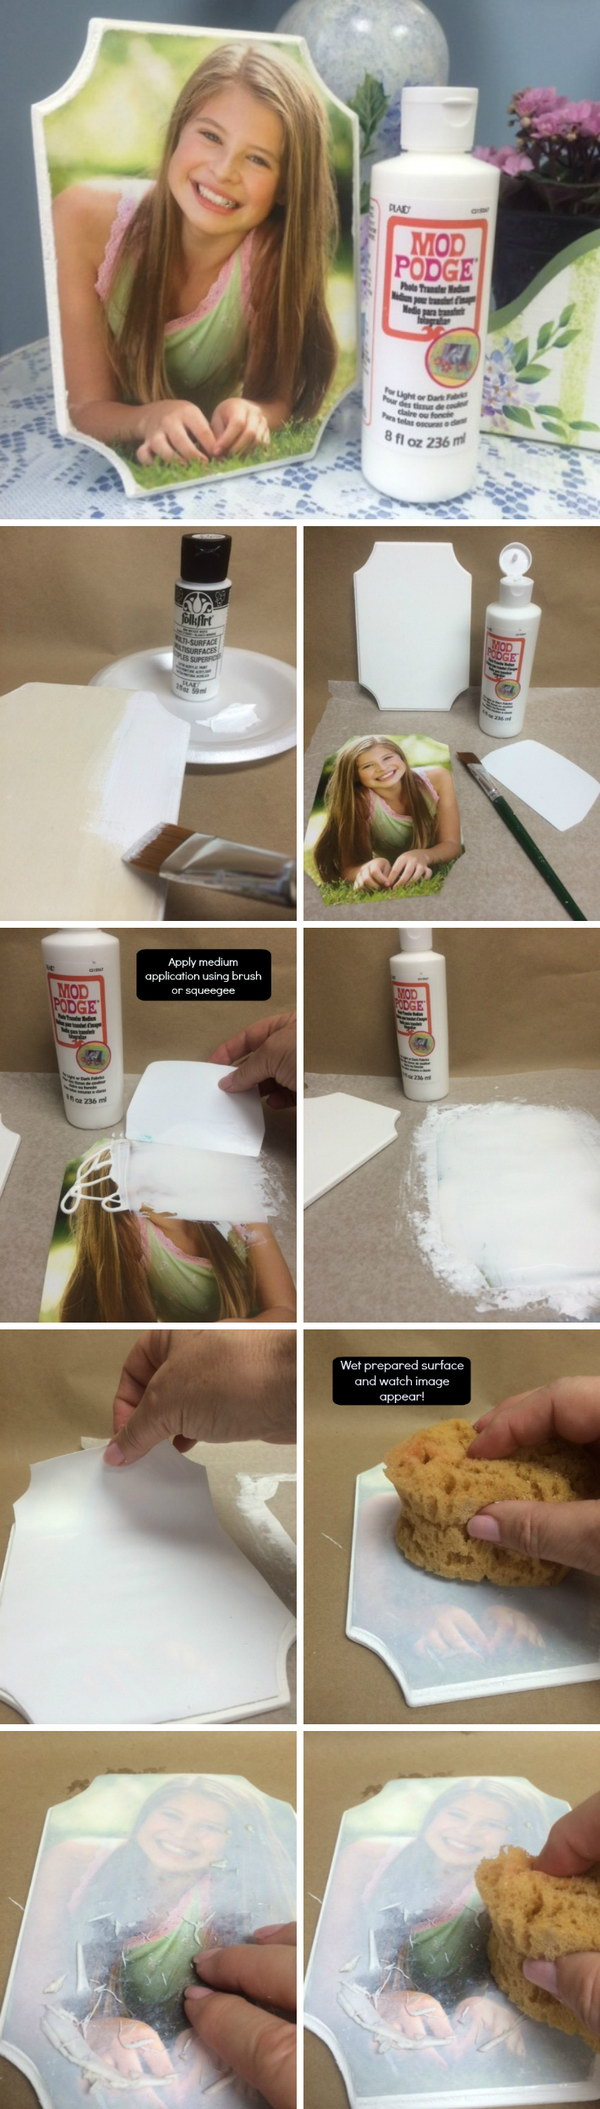 50 awesome diy image transfer projects 2017 use mod podge photo transfer medium to create a diy project solutioingenieria Choice Image